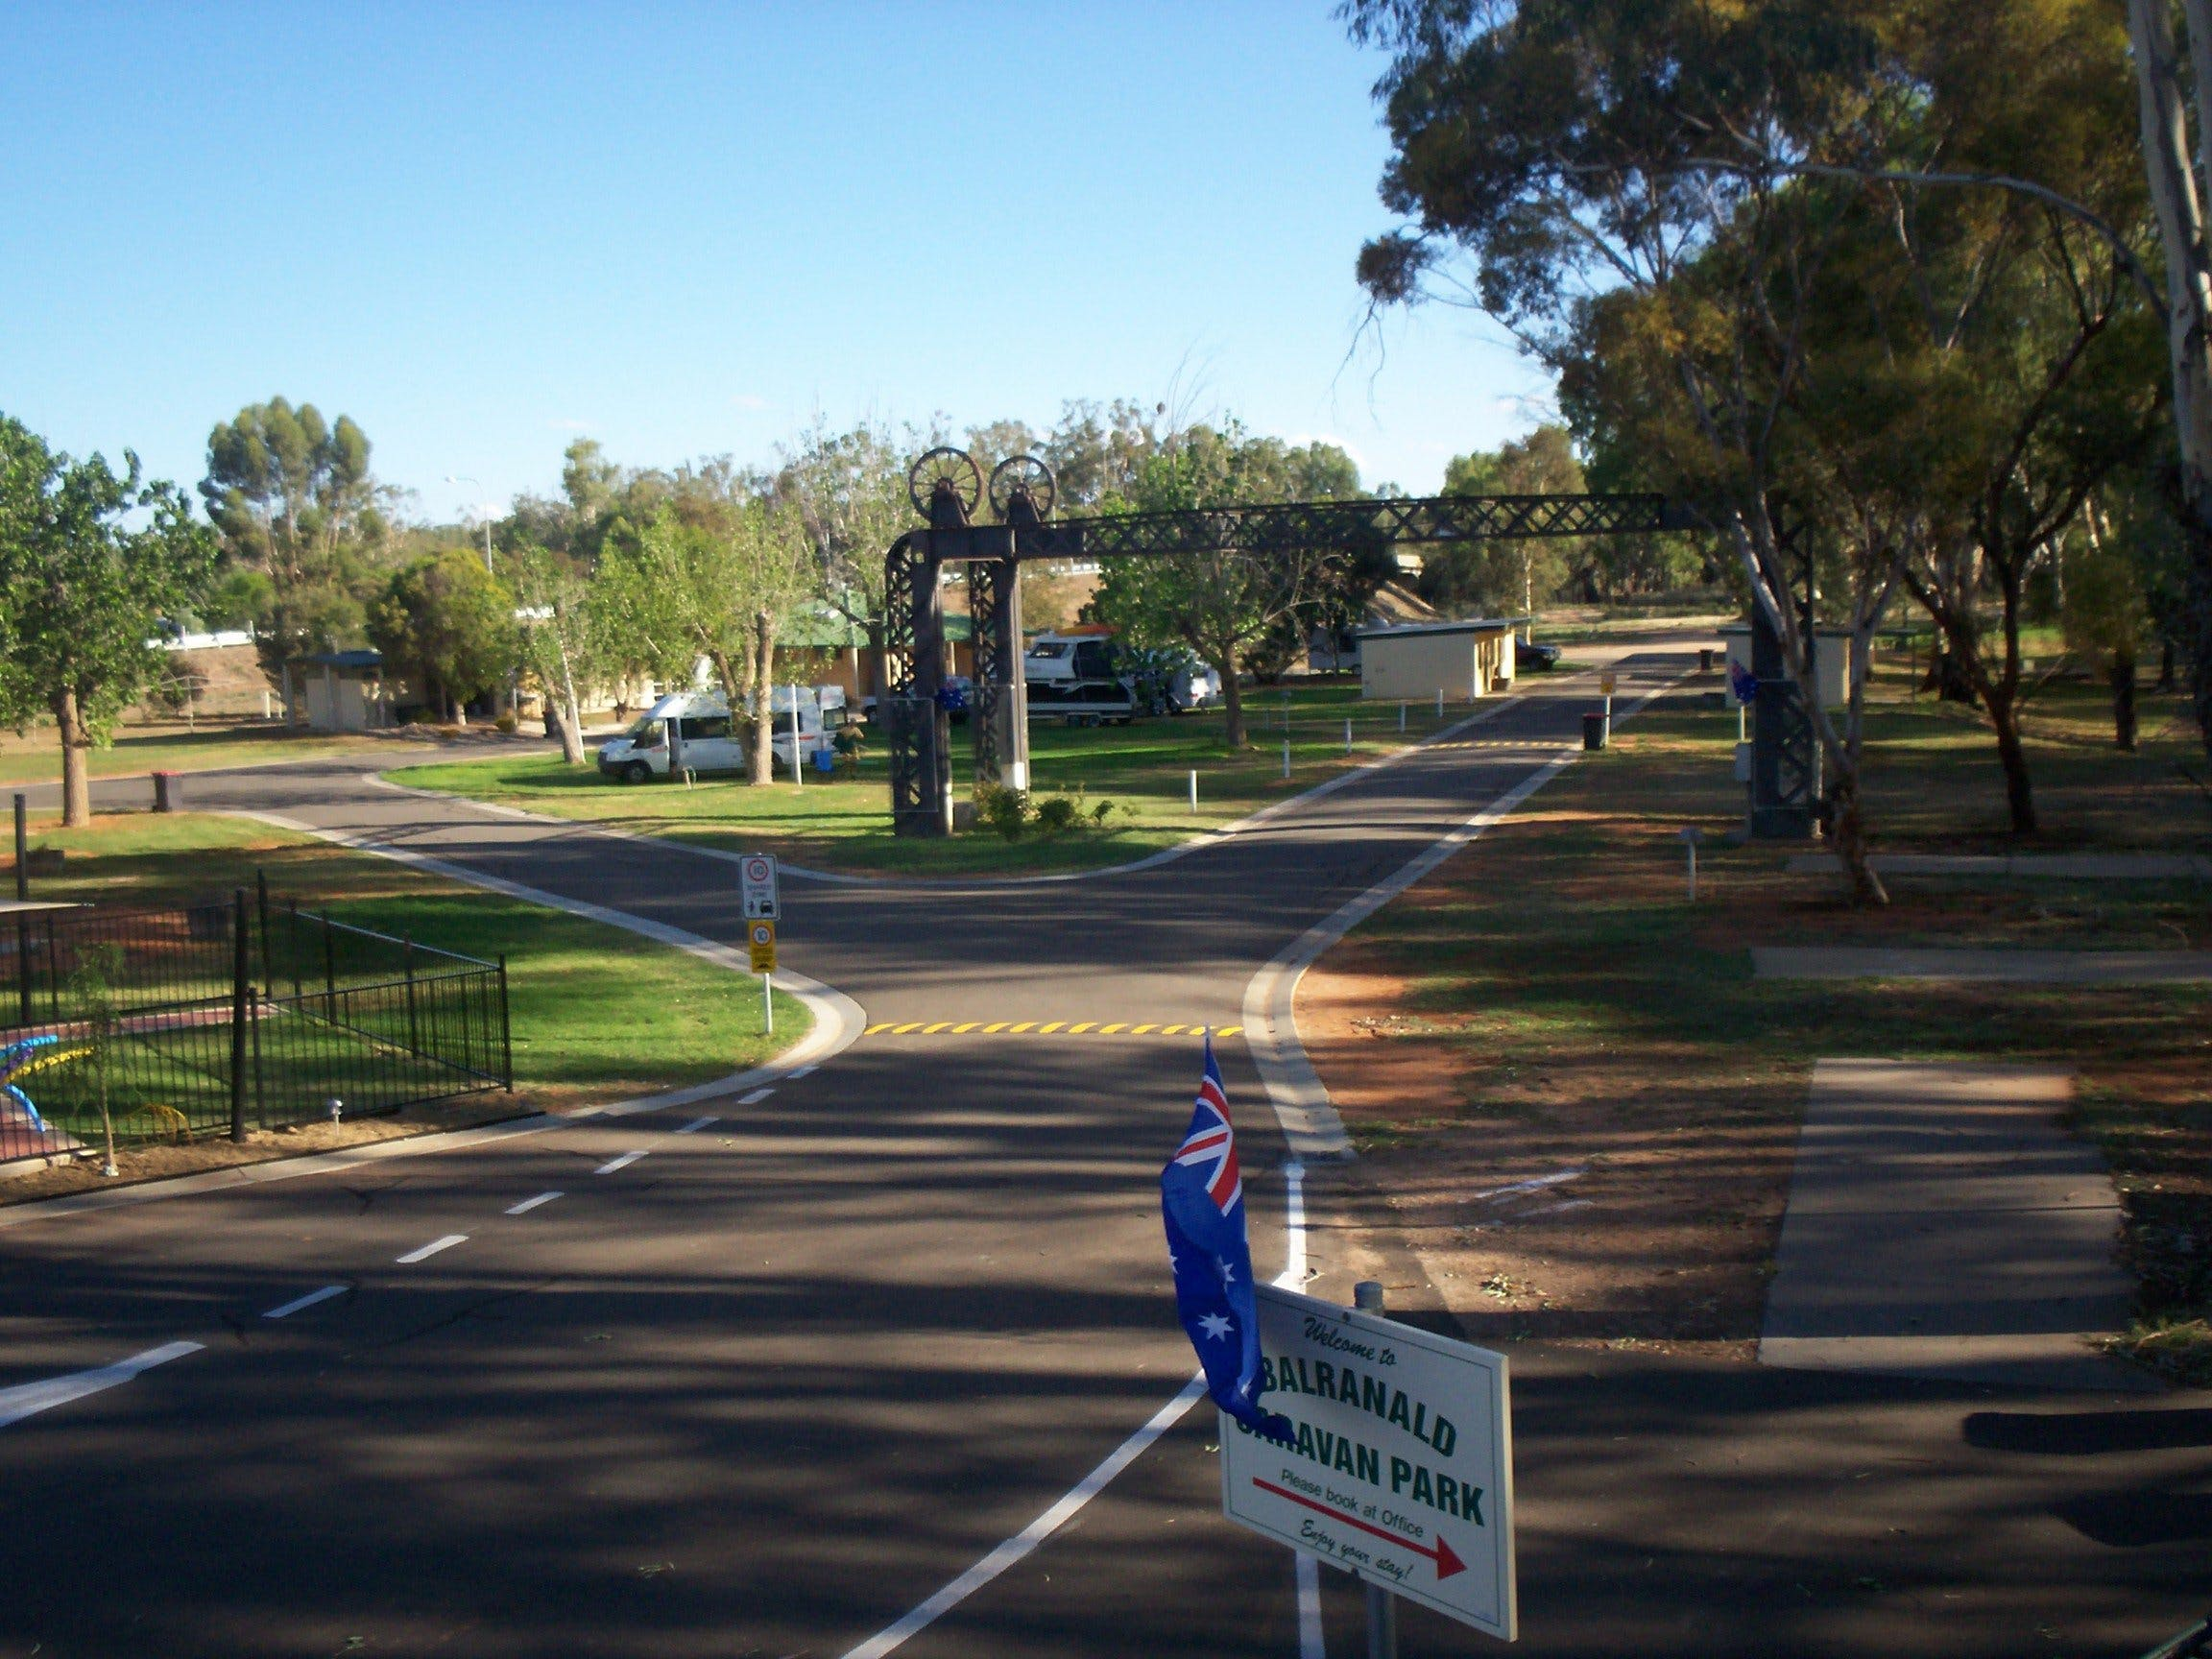 Balranald Caravan Park - Accommodation in Surfers Paradise